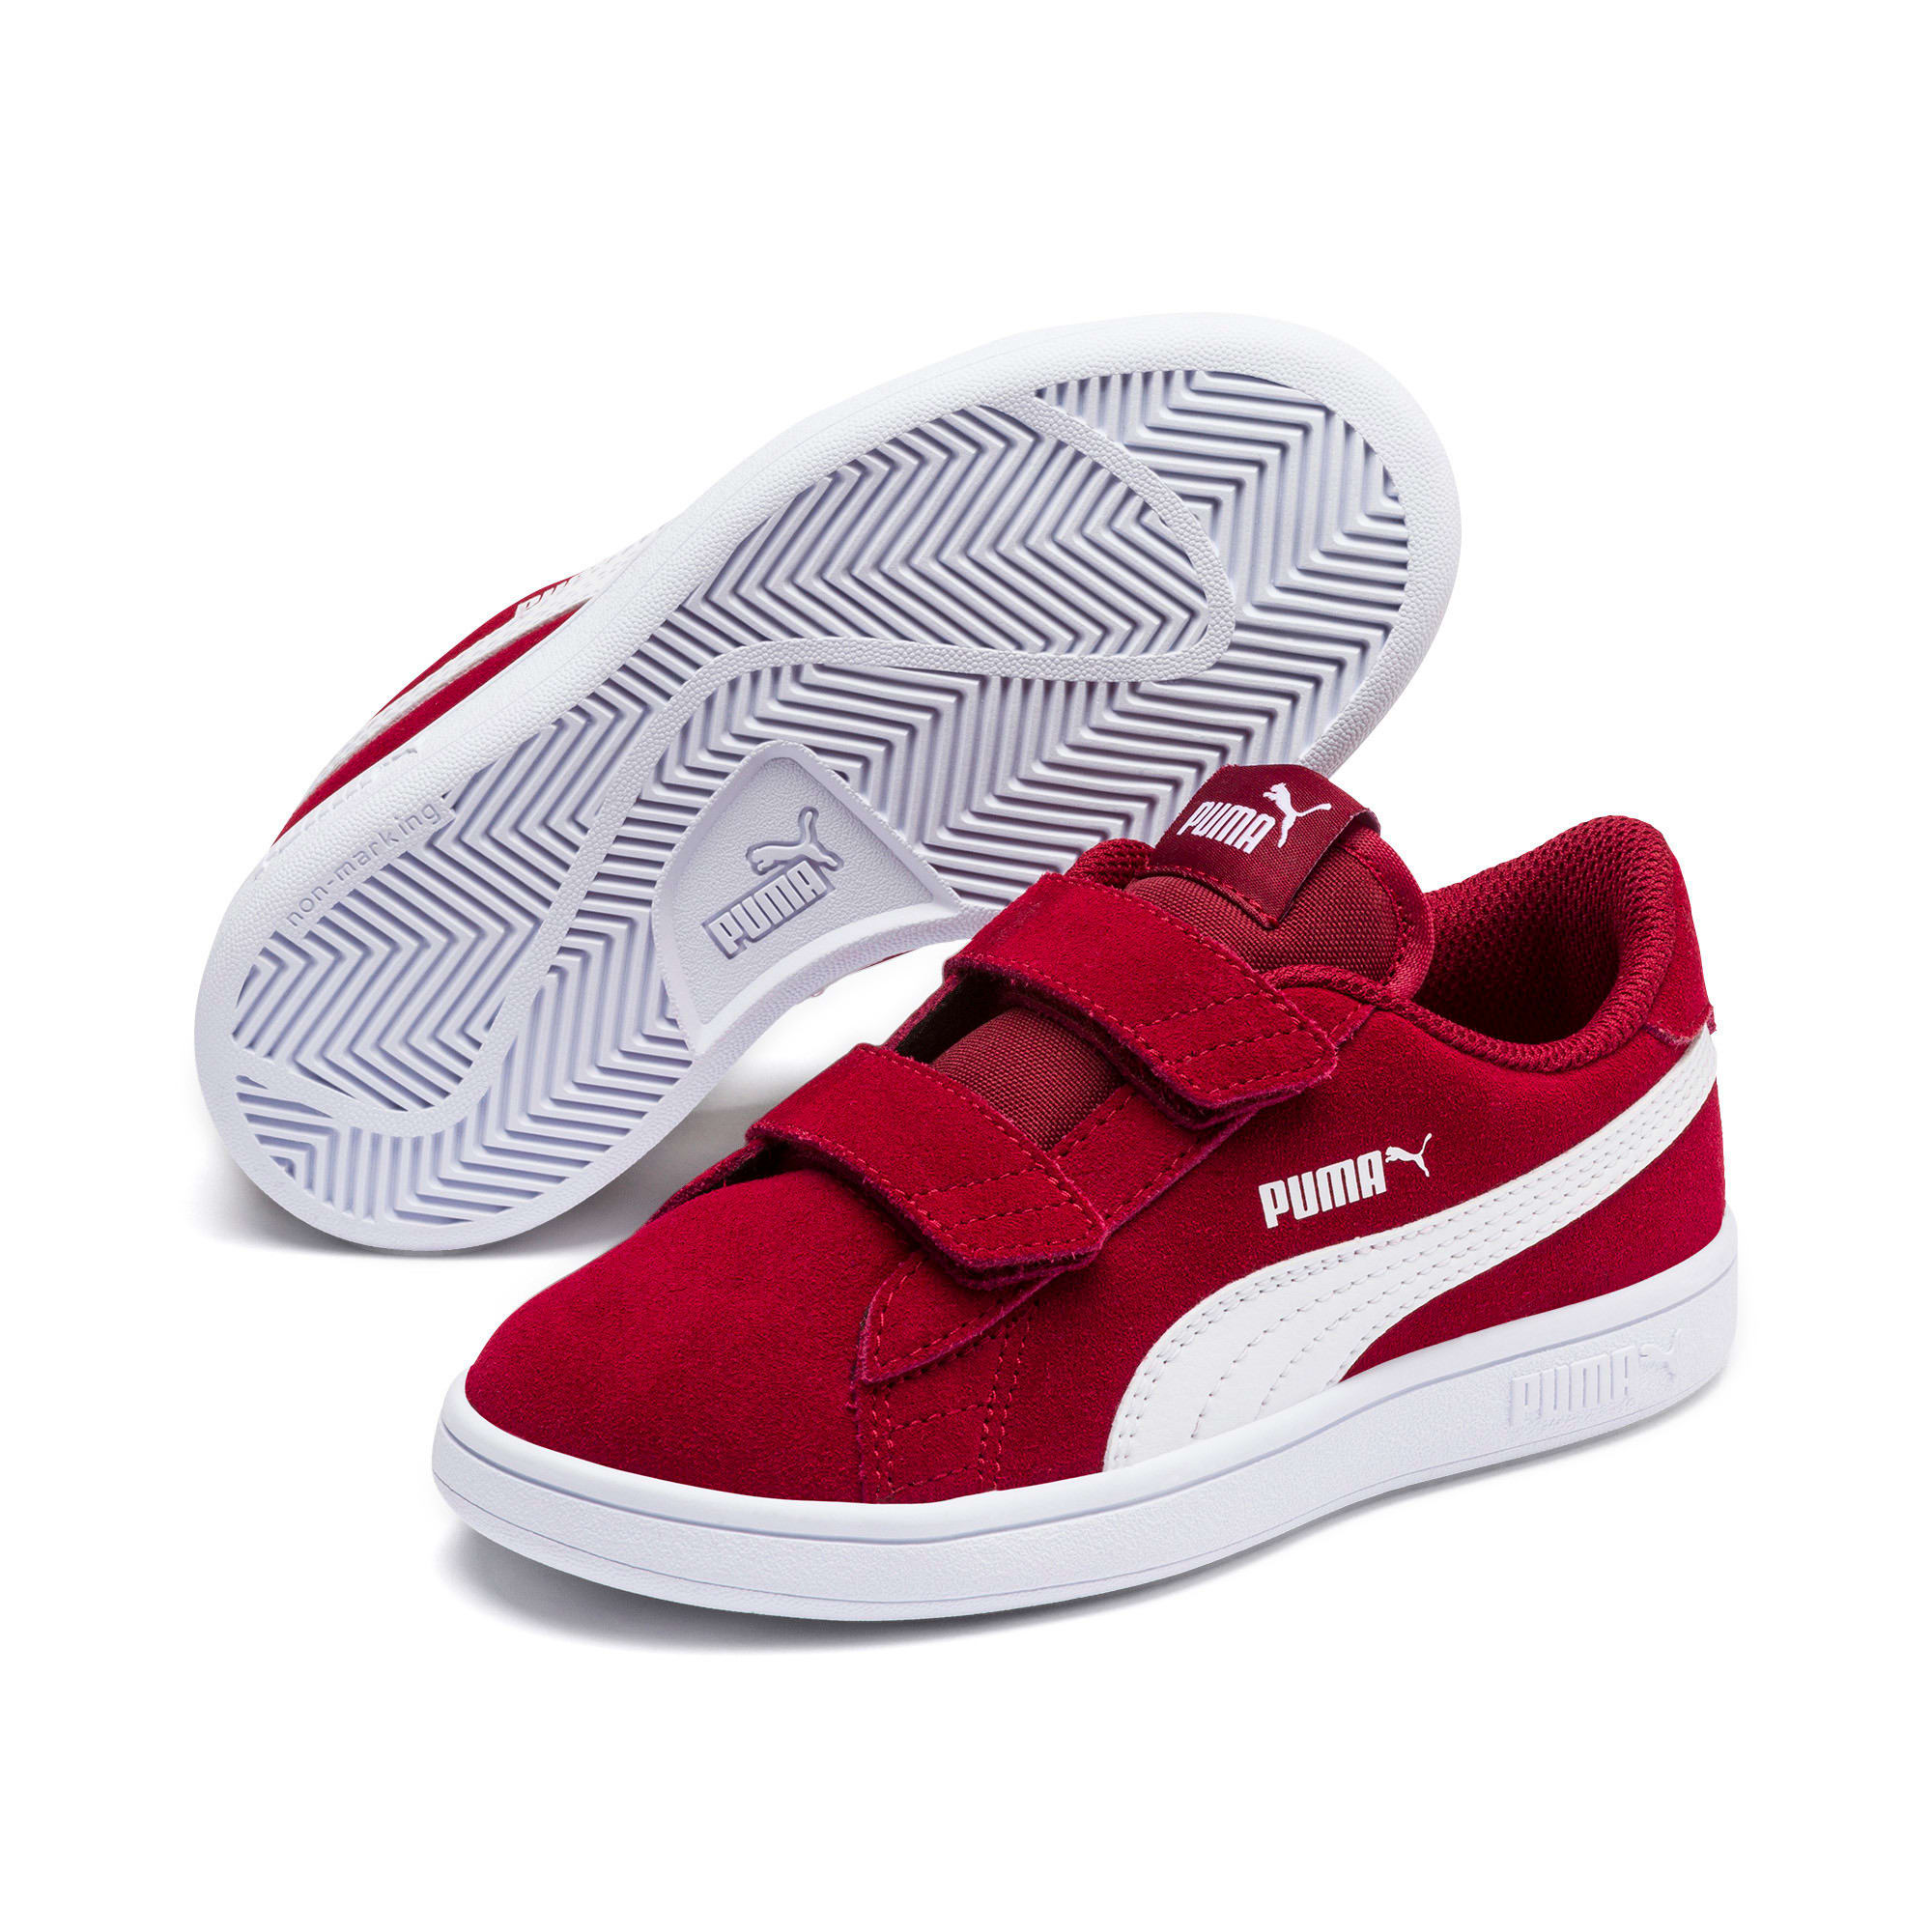 Thumbnail 2 of Smash v2 Suede Little Kids' Shoes, Rhubarb-Puma White, medium